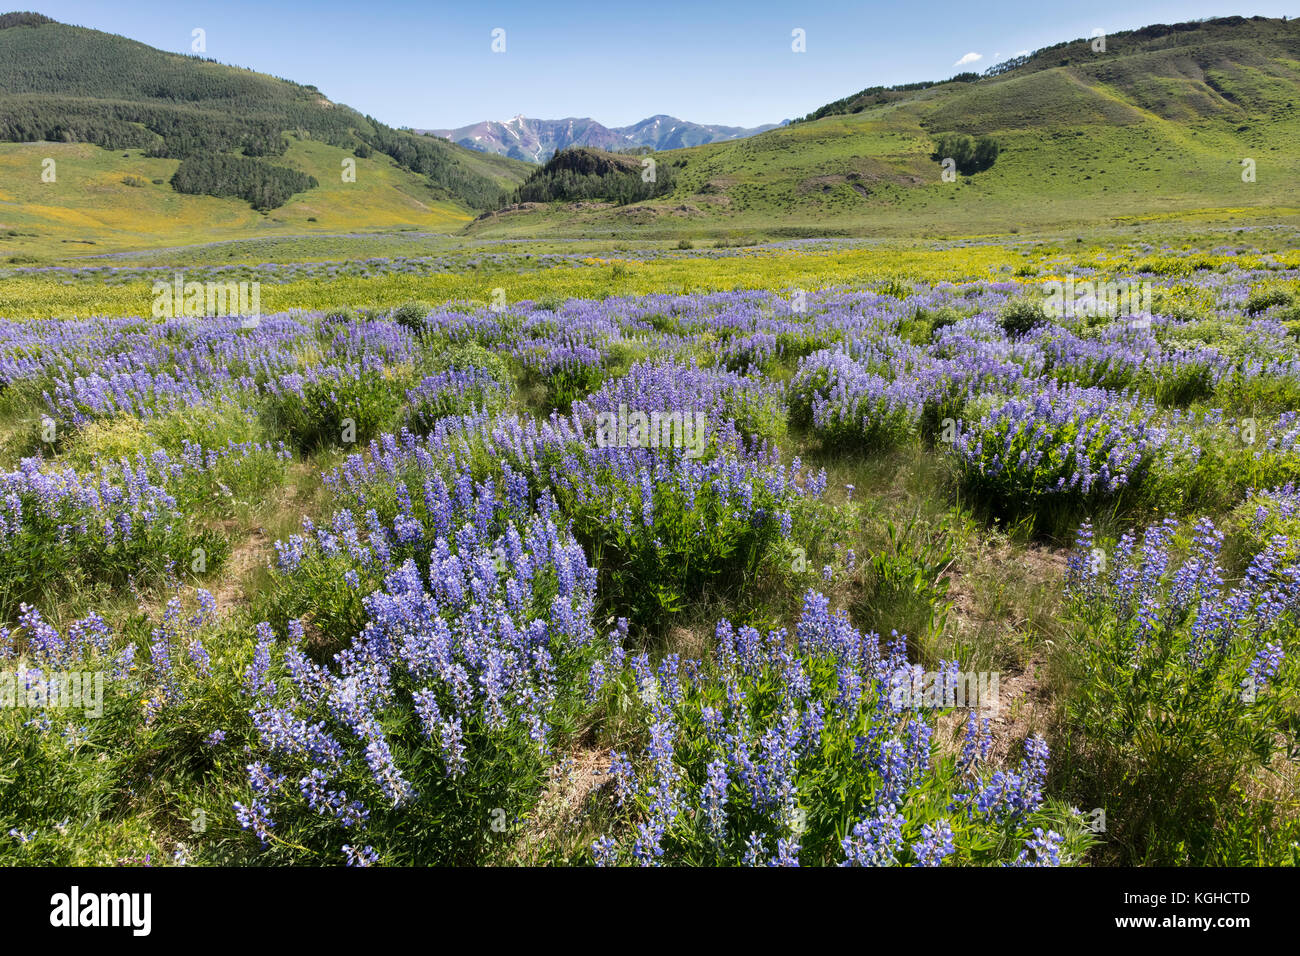 Field of Lupine, Crested Butte, Colorado - Stock Image